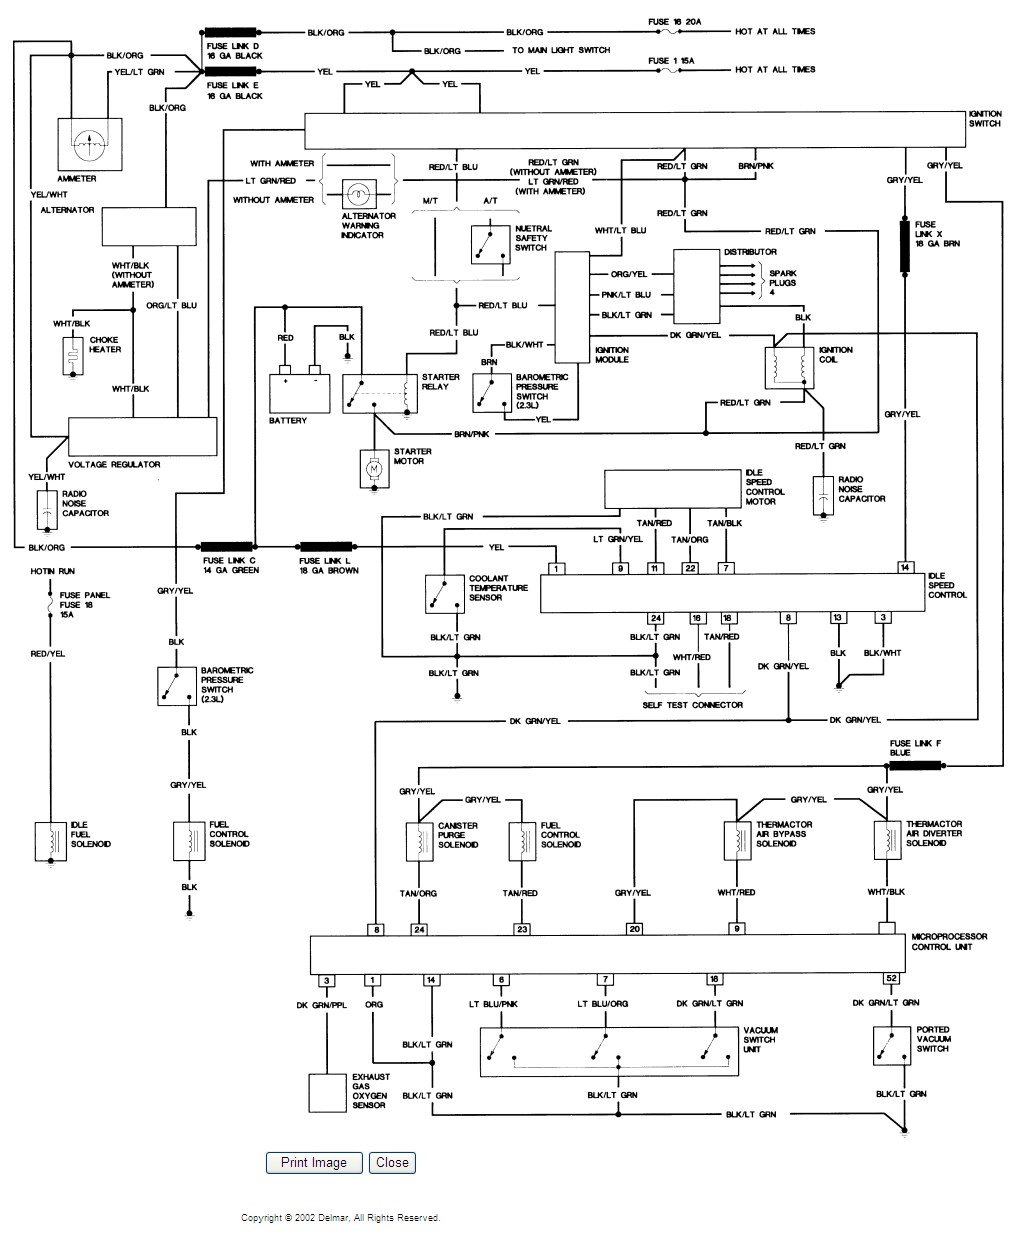 1985 Ford Ranger Wiring Diagram Third Level Electrical Schematic I Need The For A Am Not 1999